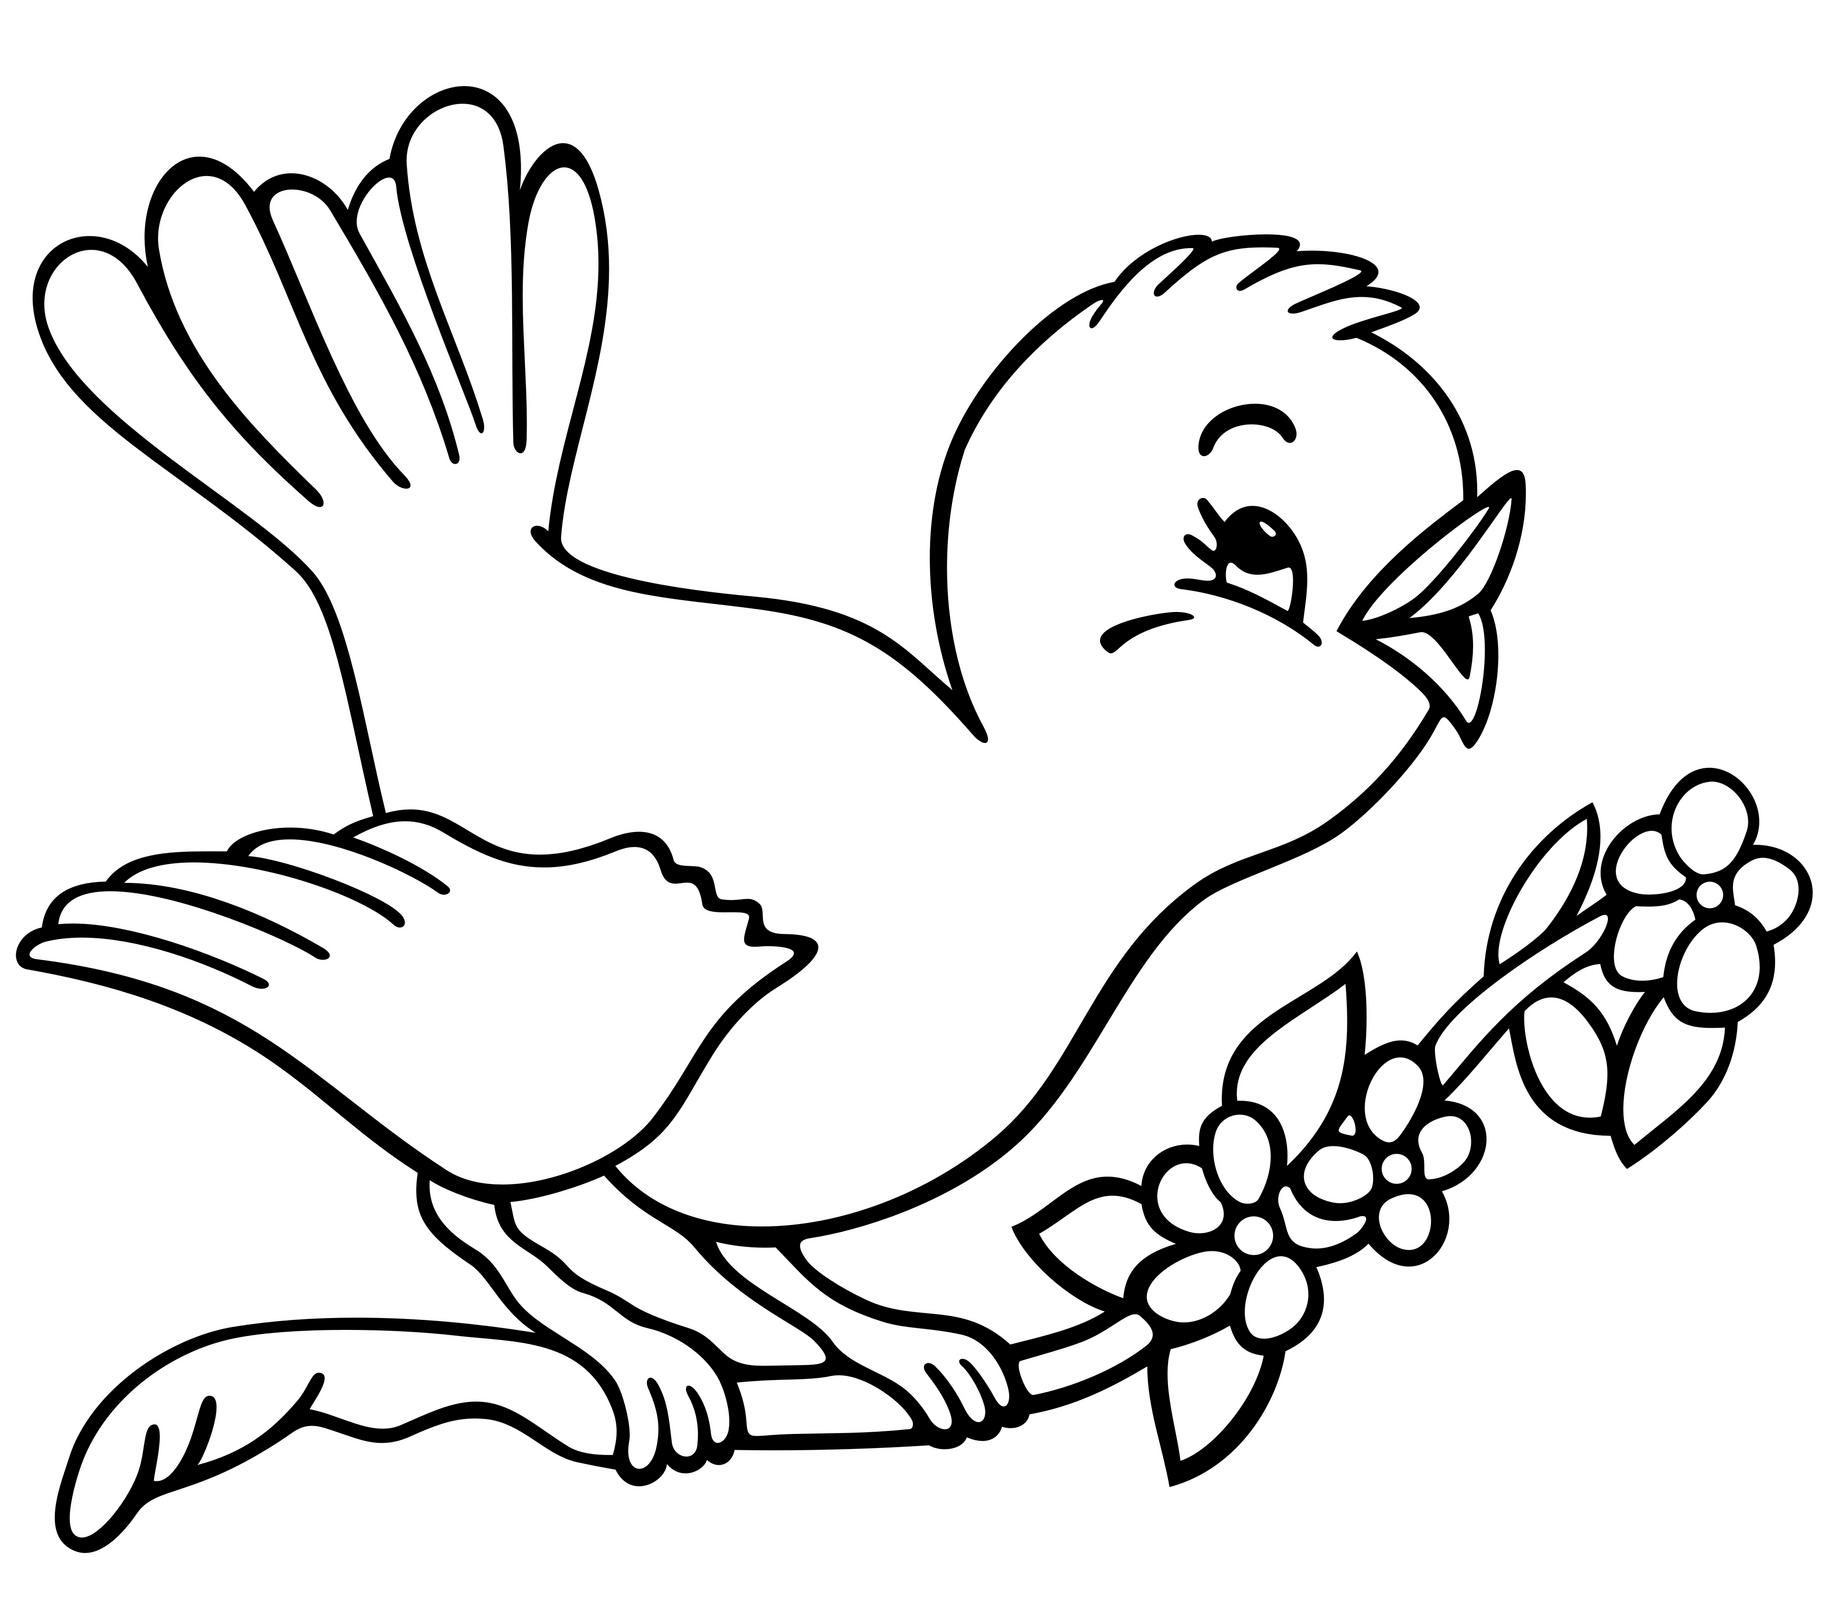 spring birds coloring pages birds coloring page bird coloring pages cool coloring spring birds pages coloring